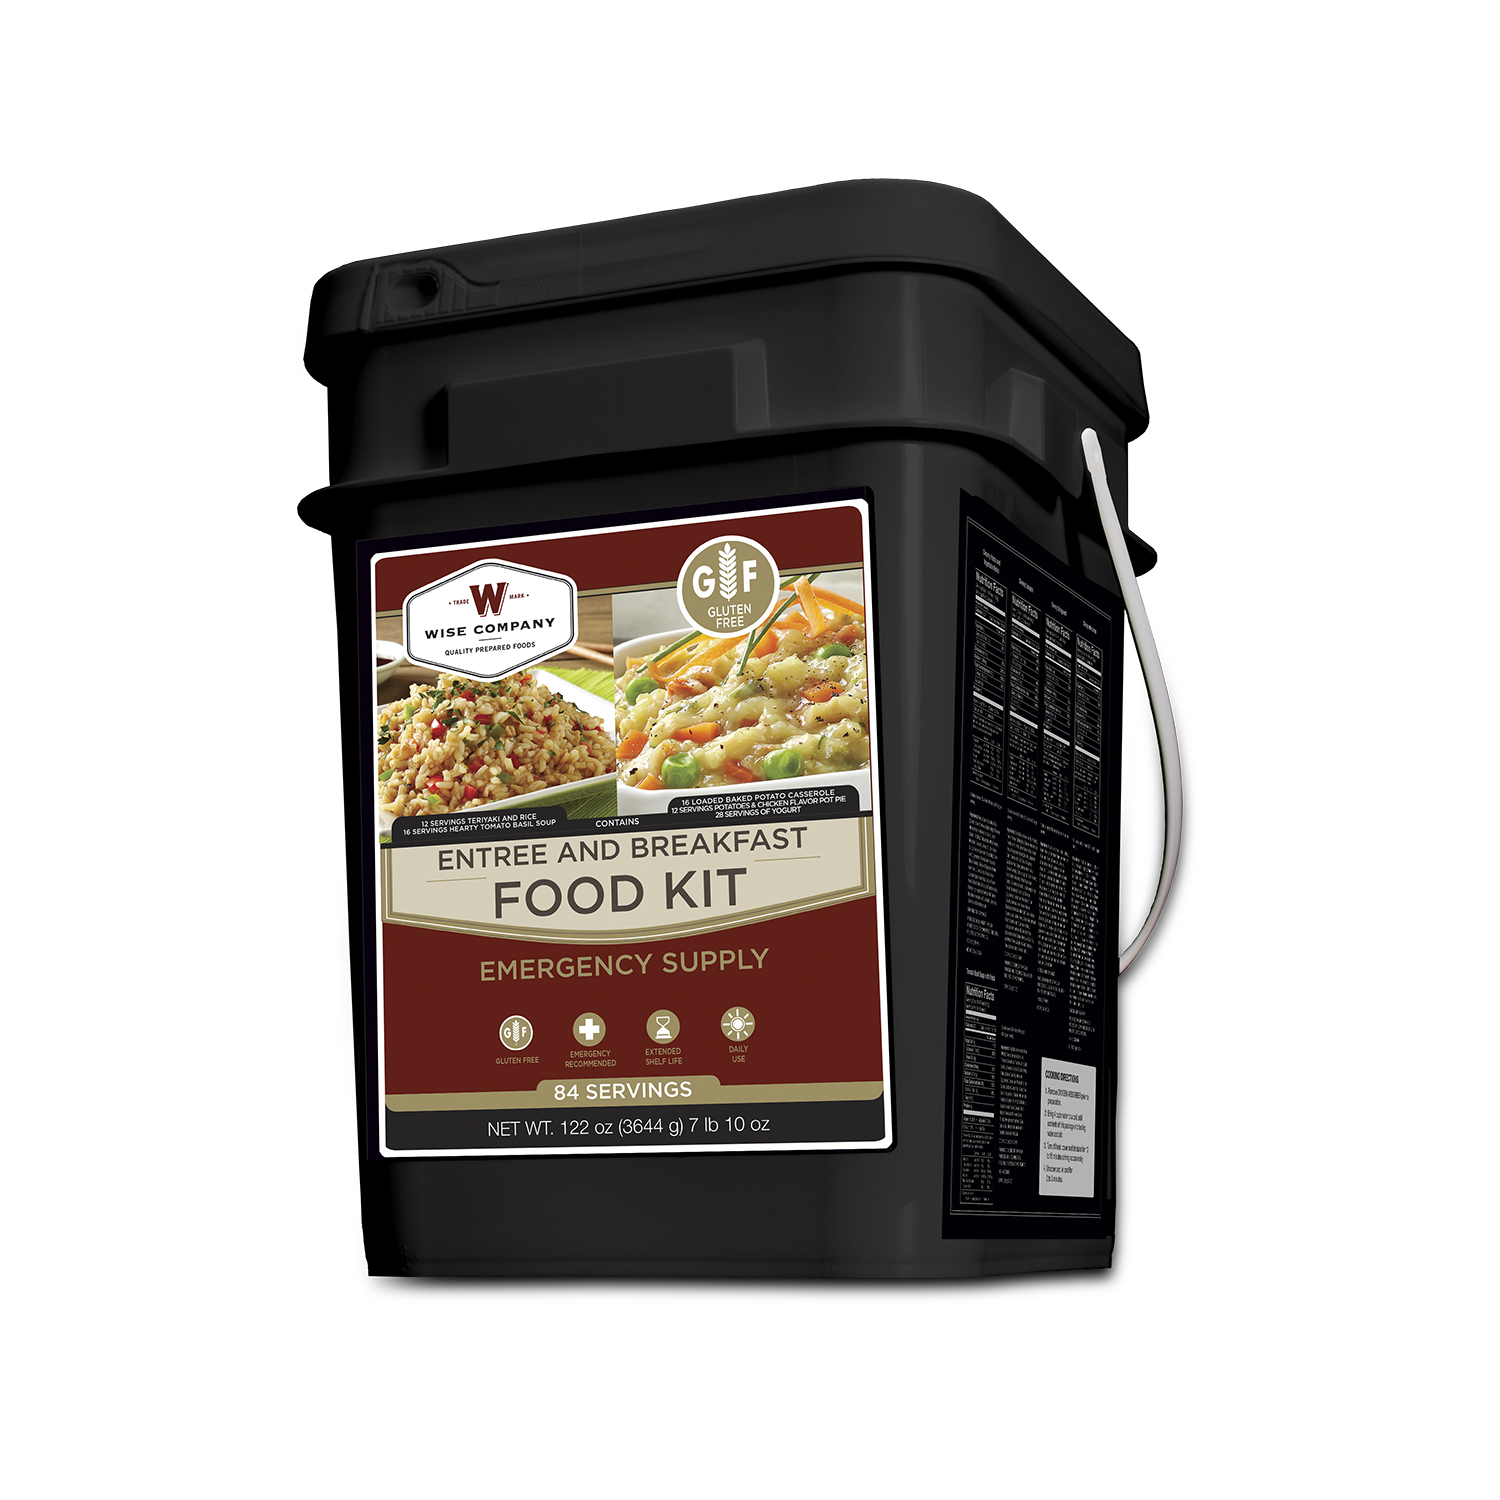 84 Serving Entrée and Breakfast Gluten-Free bucket